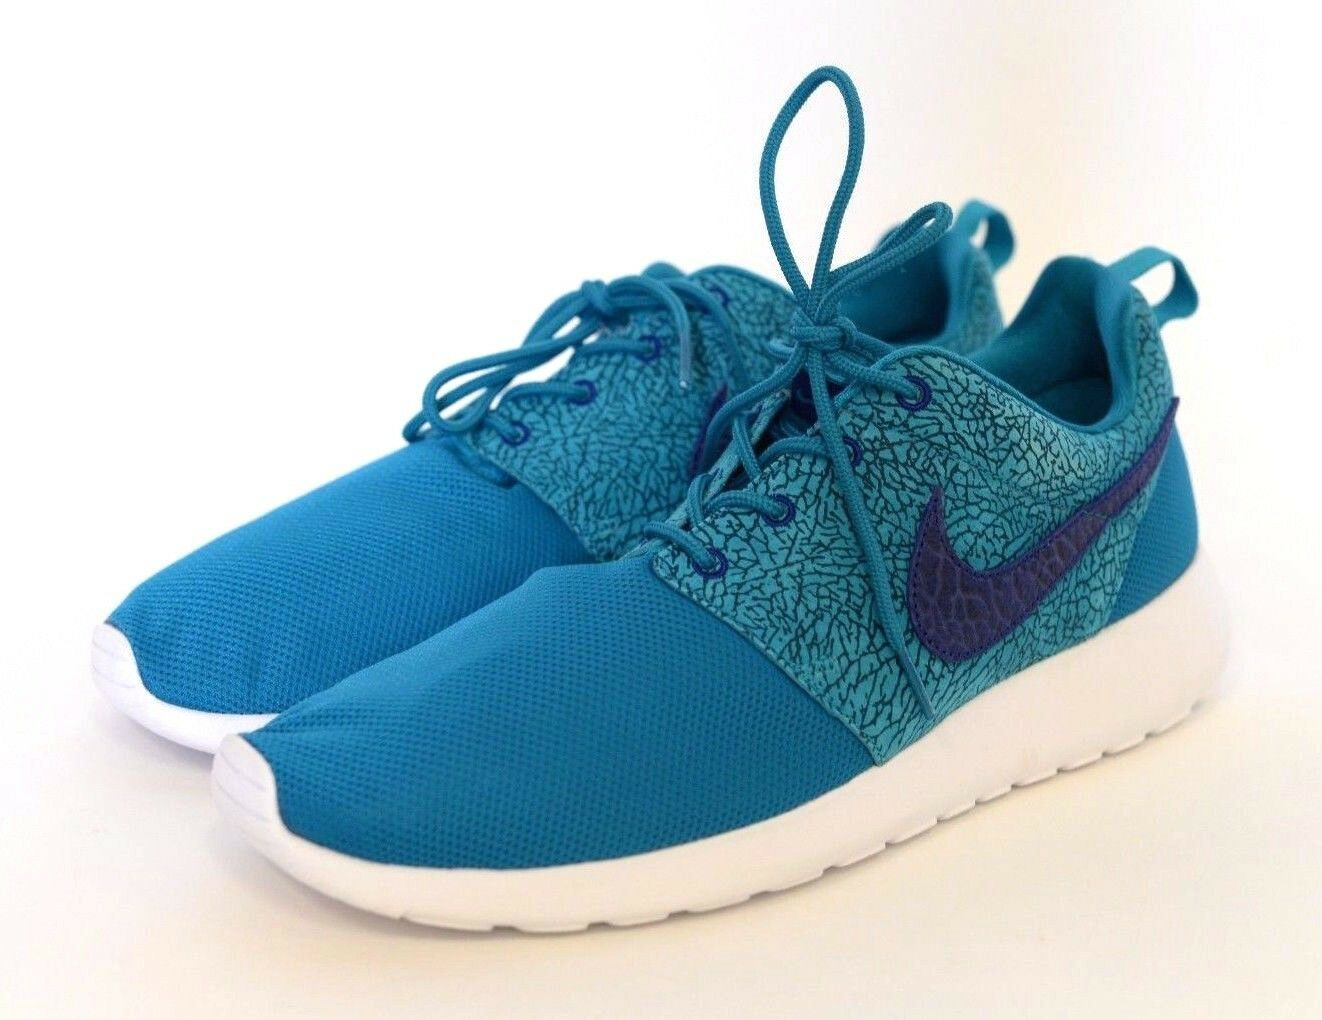 DS Nike Roshe Run Tropical Teal Deep Royal 511881-341 sz 10 Cement Pack Mesh New